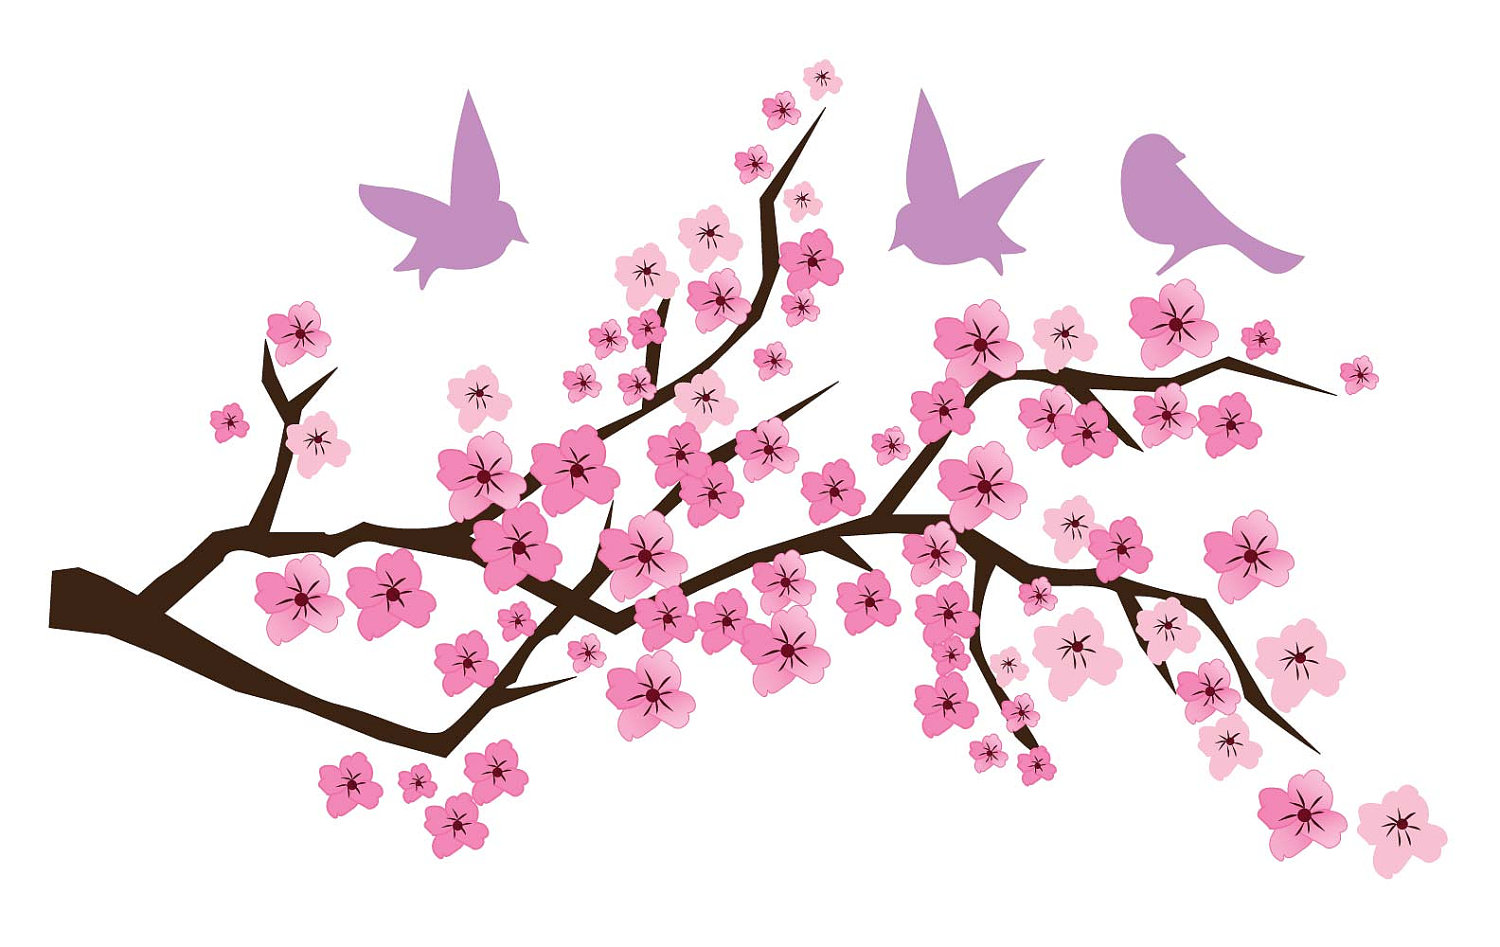 Tree branches, Clip art .-Tree branches, Clip art .-12